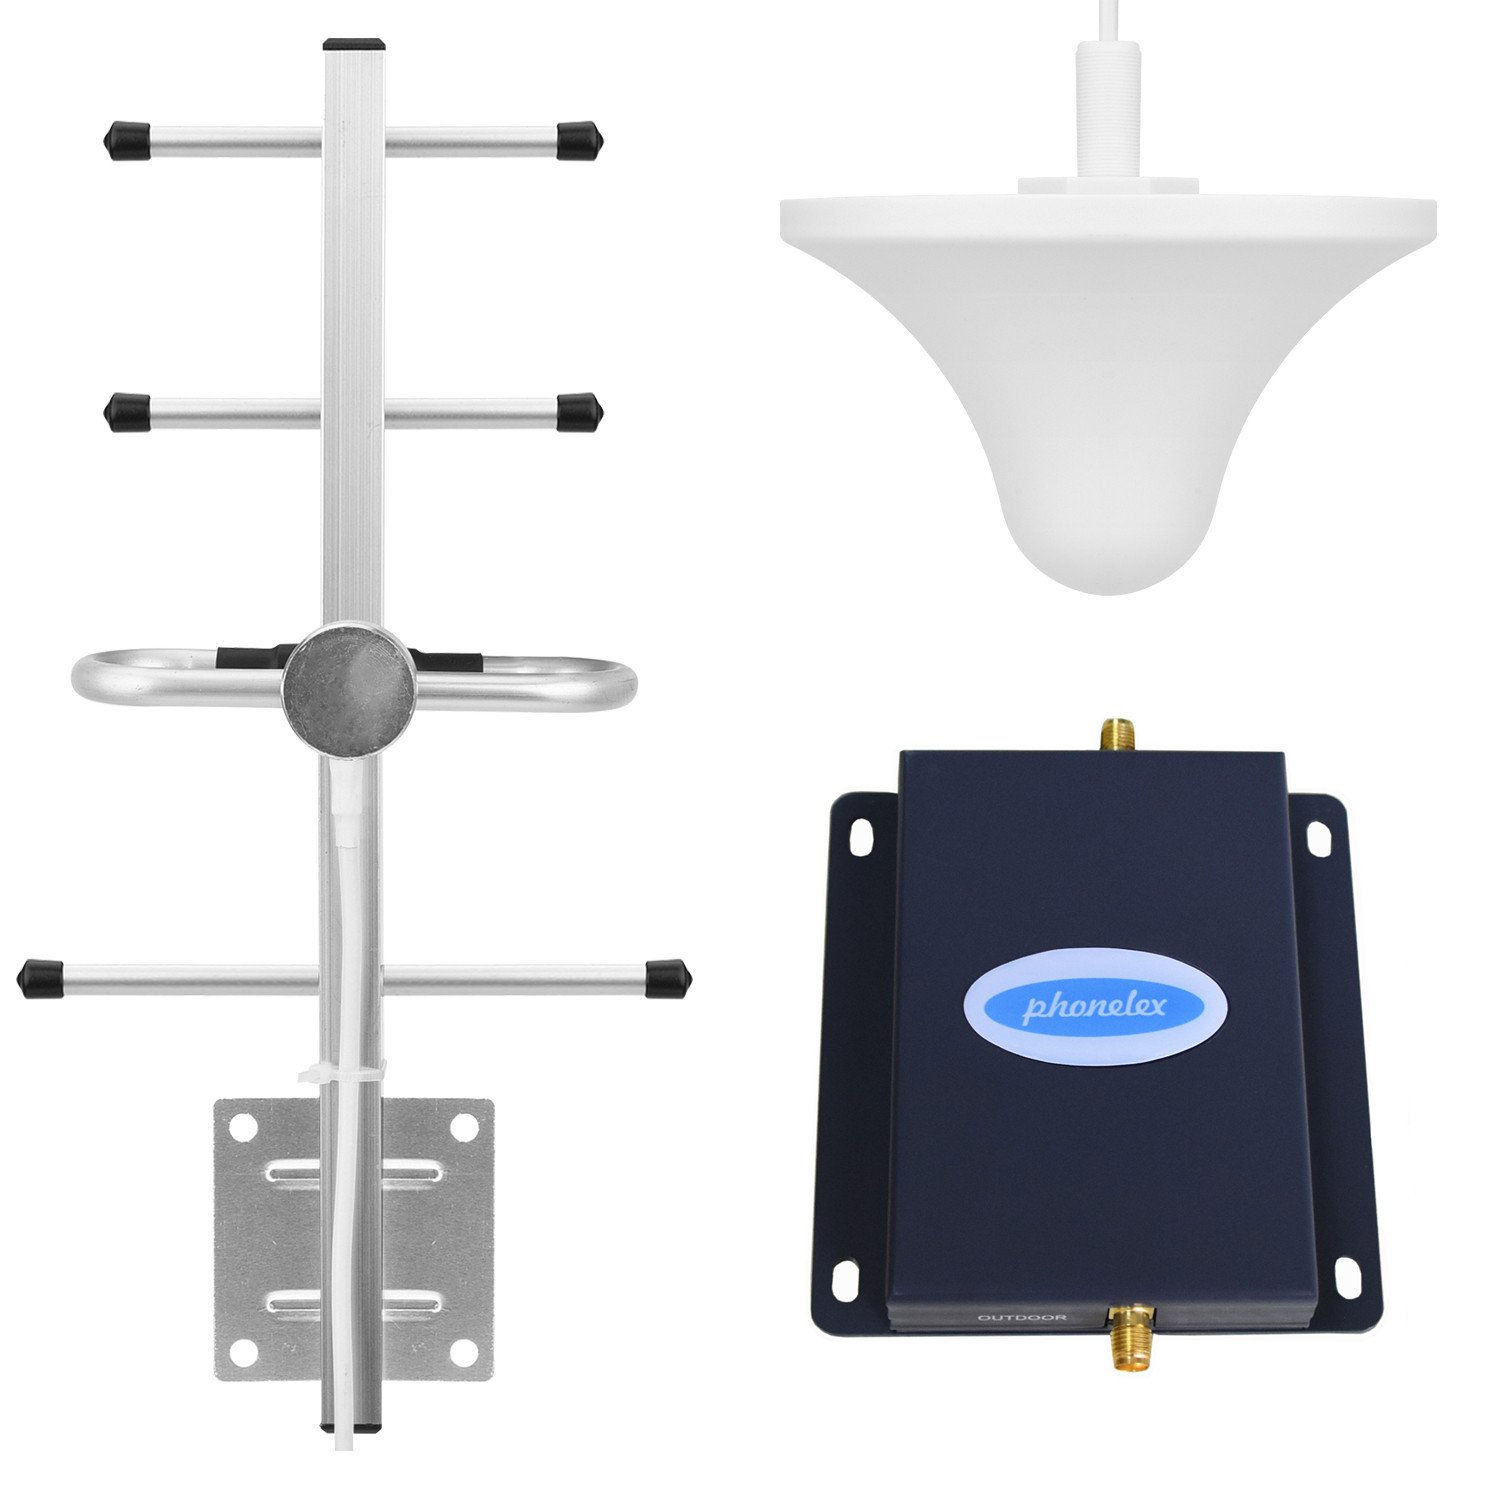 Phonelex Cell Phone Signal Booster AT&T T-Mobile 4G LTE 700MHz FDD Band17/12 Cell Phone Signal Amplifier AT&T Mobile Signal Booster Cell Phone Repeater (Ceiling+Yagi)